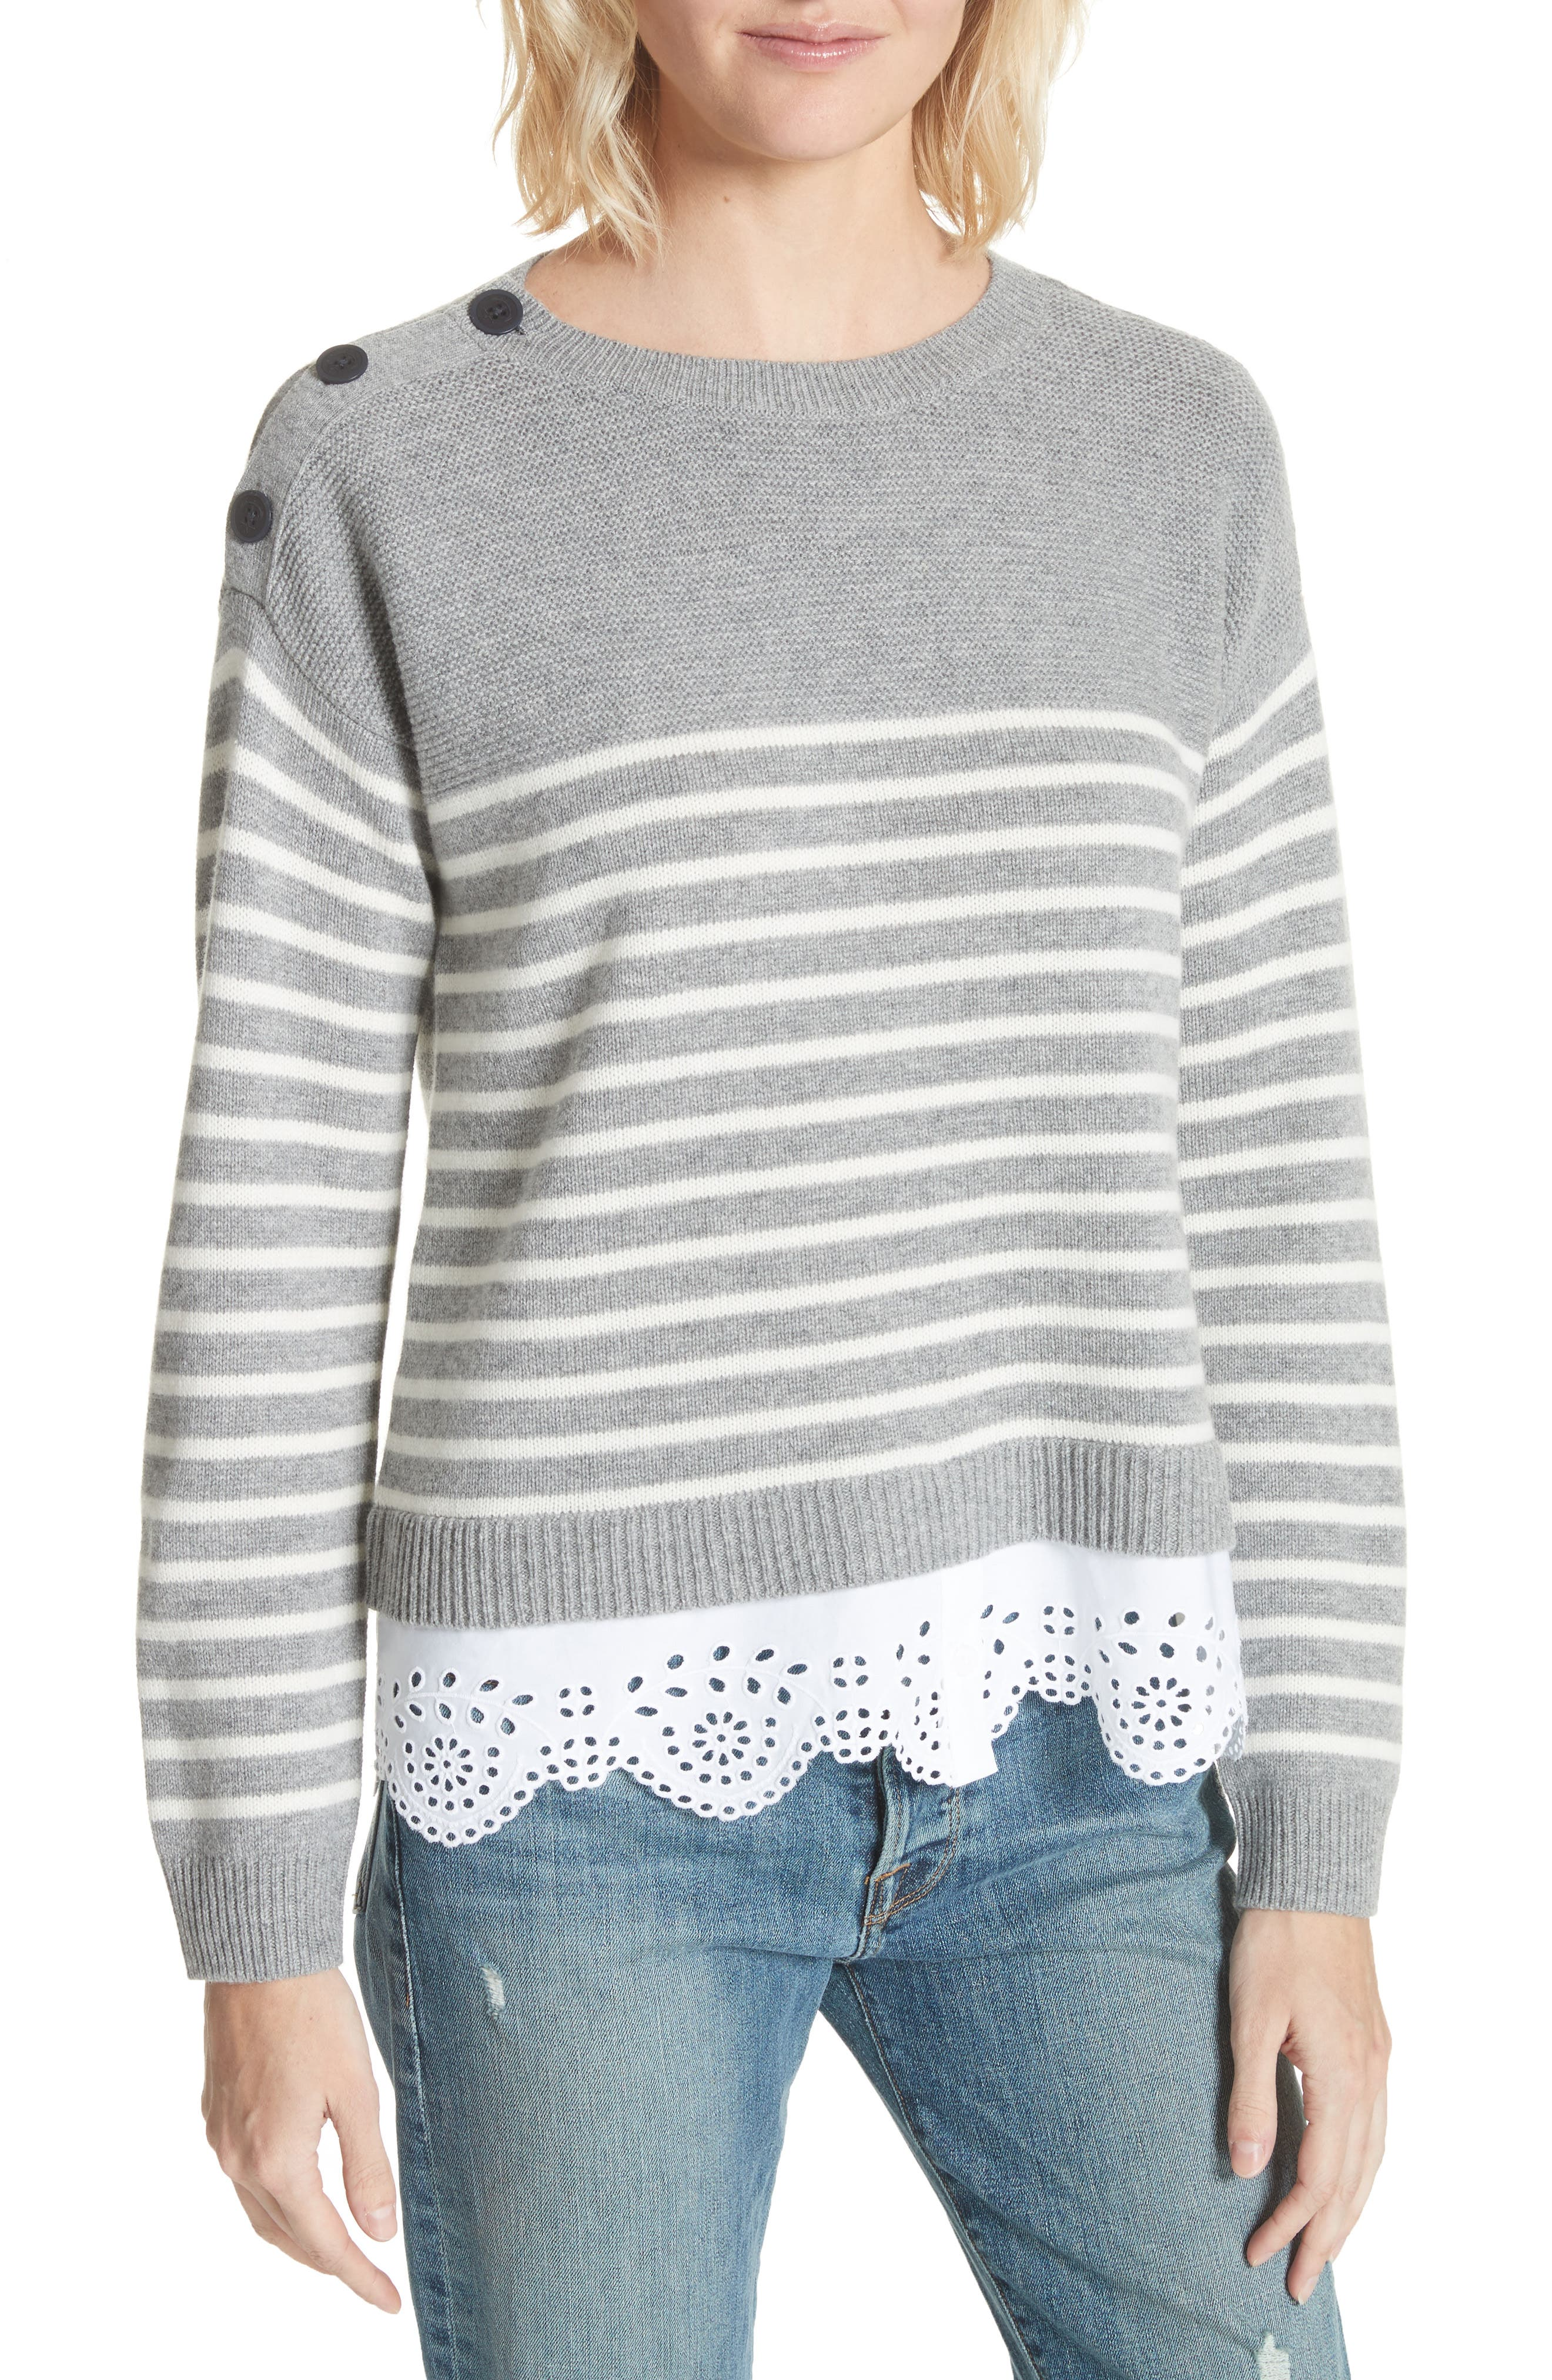 Joie Aefre Woven Trim Wool & Cashmere Sweater